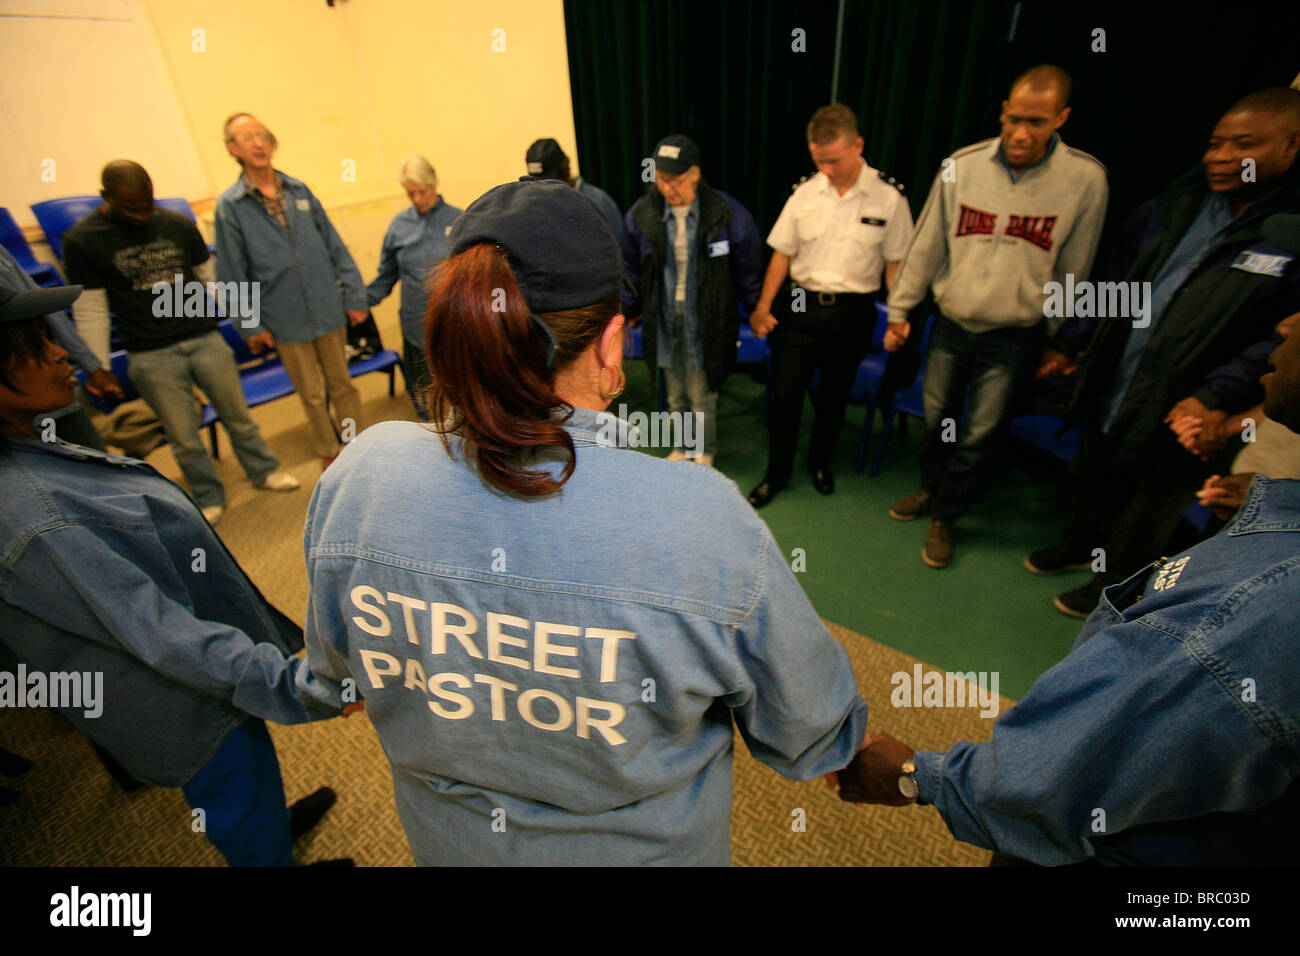 Street Pastors praying with a policeman in North London, London, England, UK - Stock Image